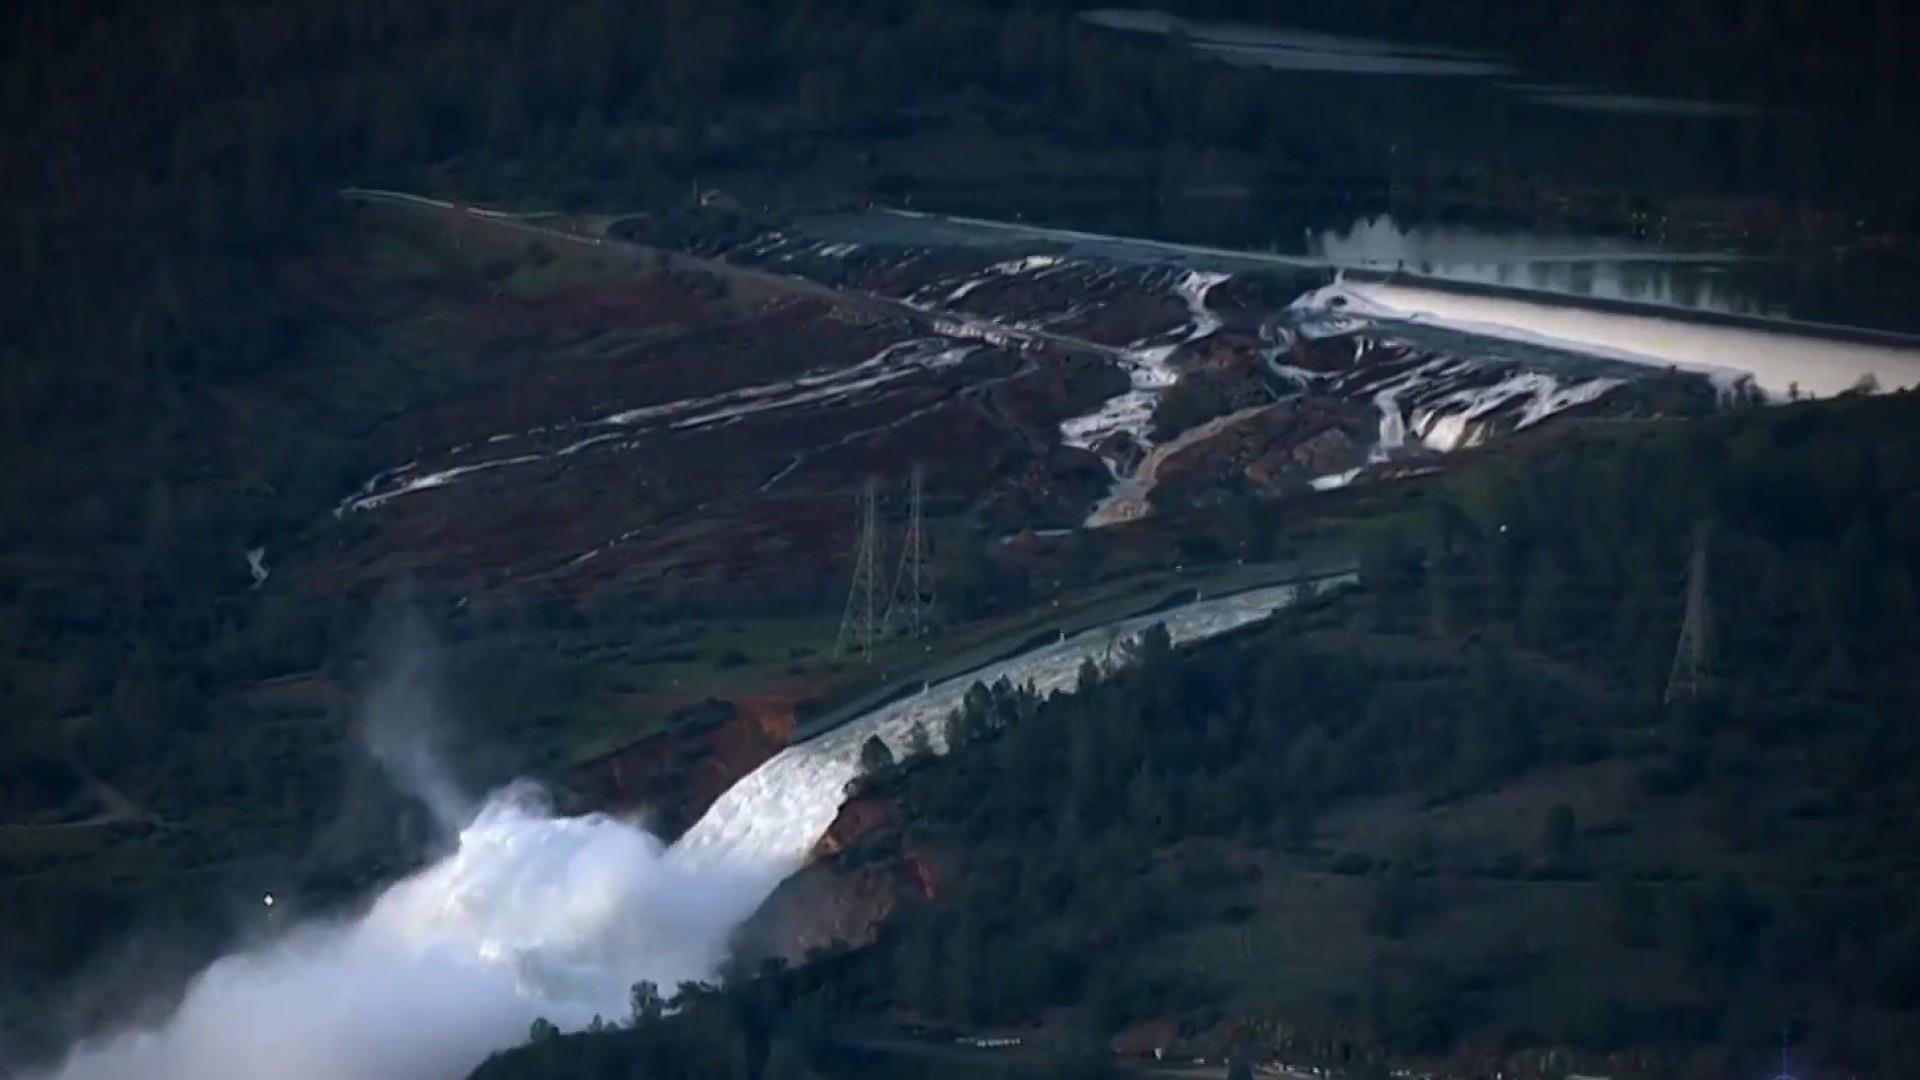 One year later, Oroville dam crisis still on residents' minds